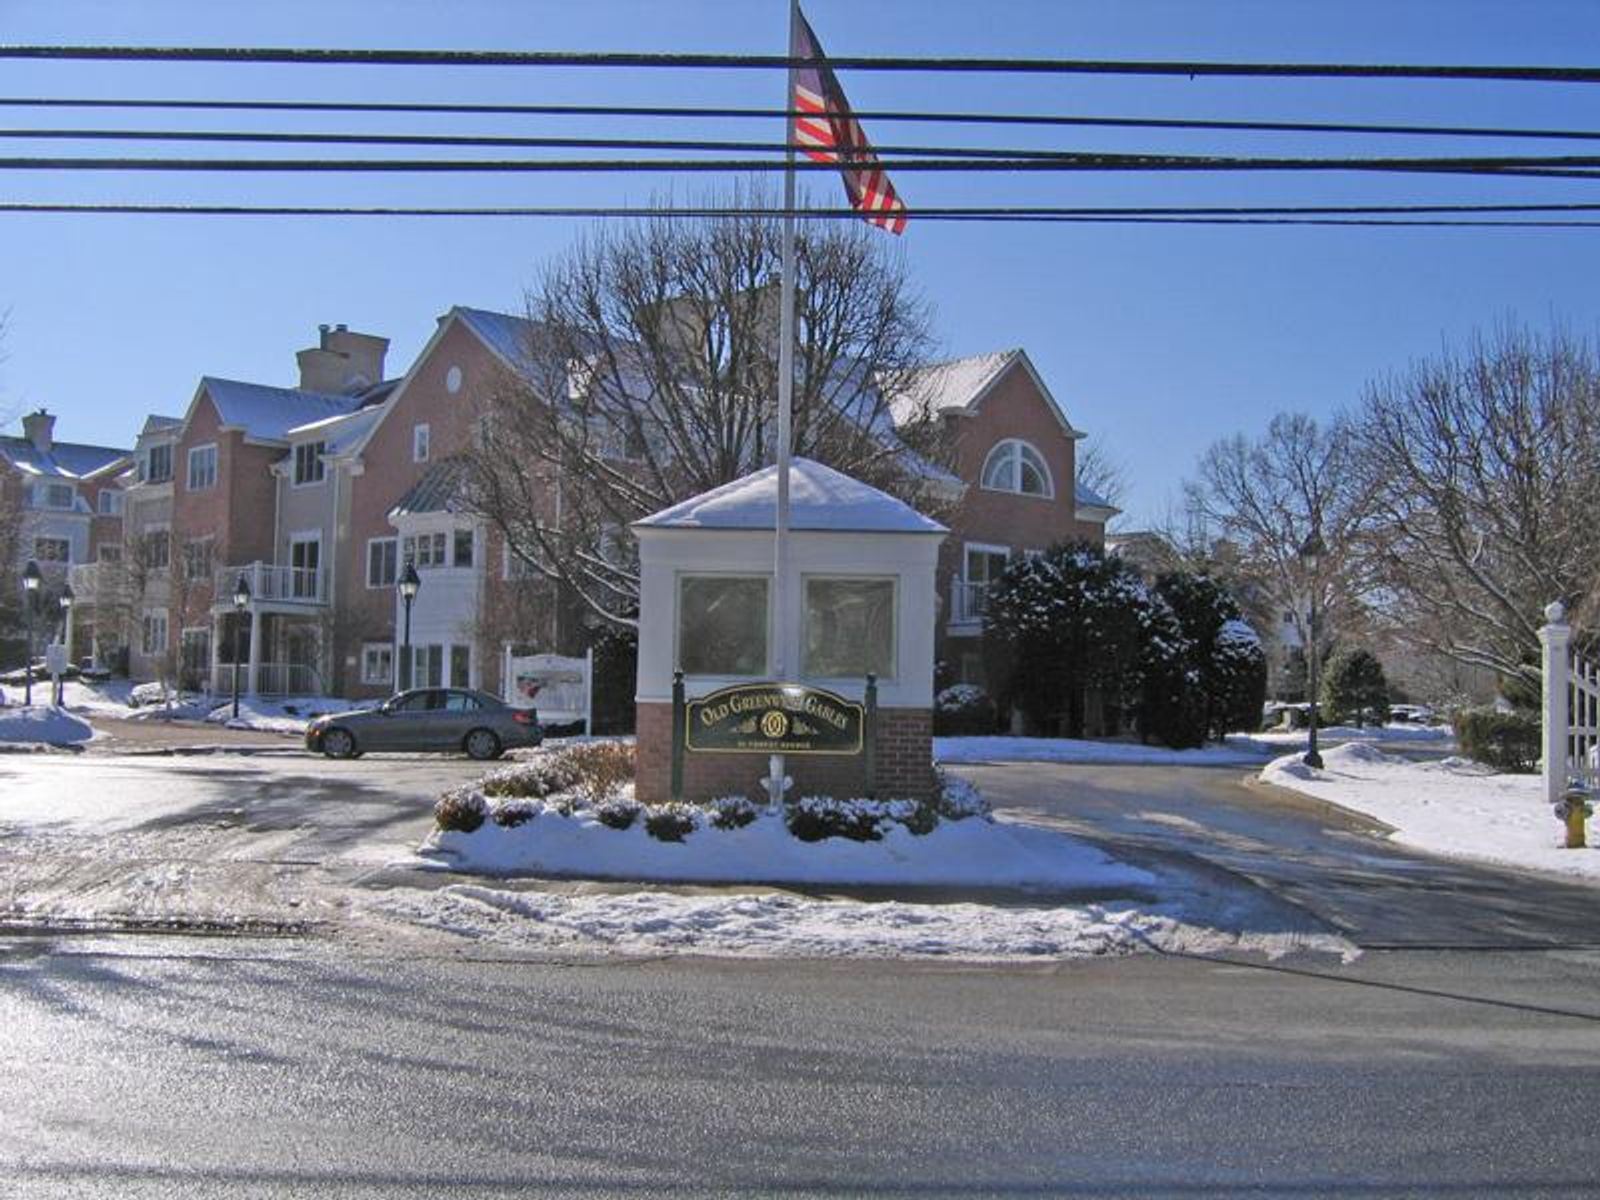 Townhouse at old greenwich gables old greenwich ct for Greenwich townhomes for sale